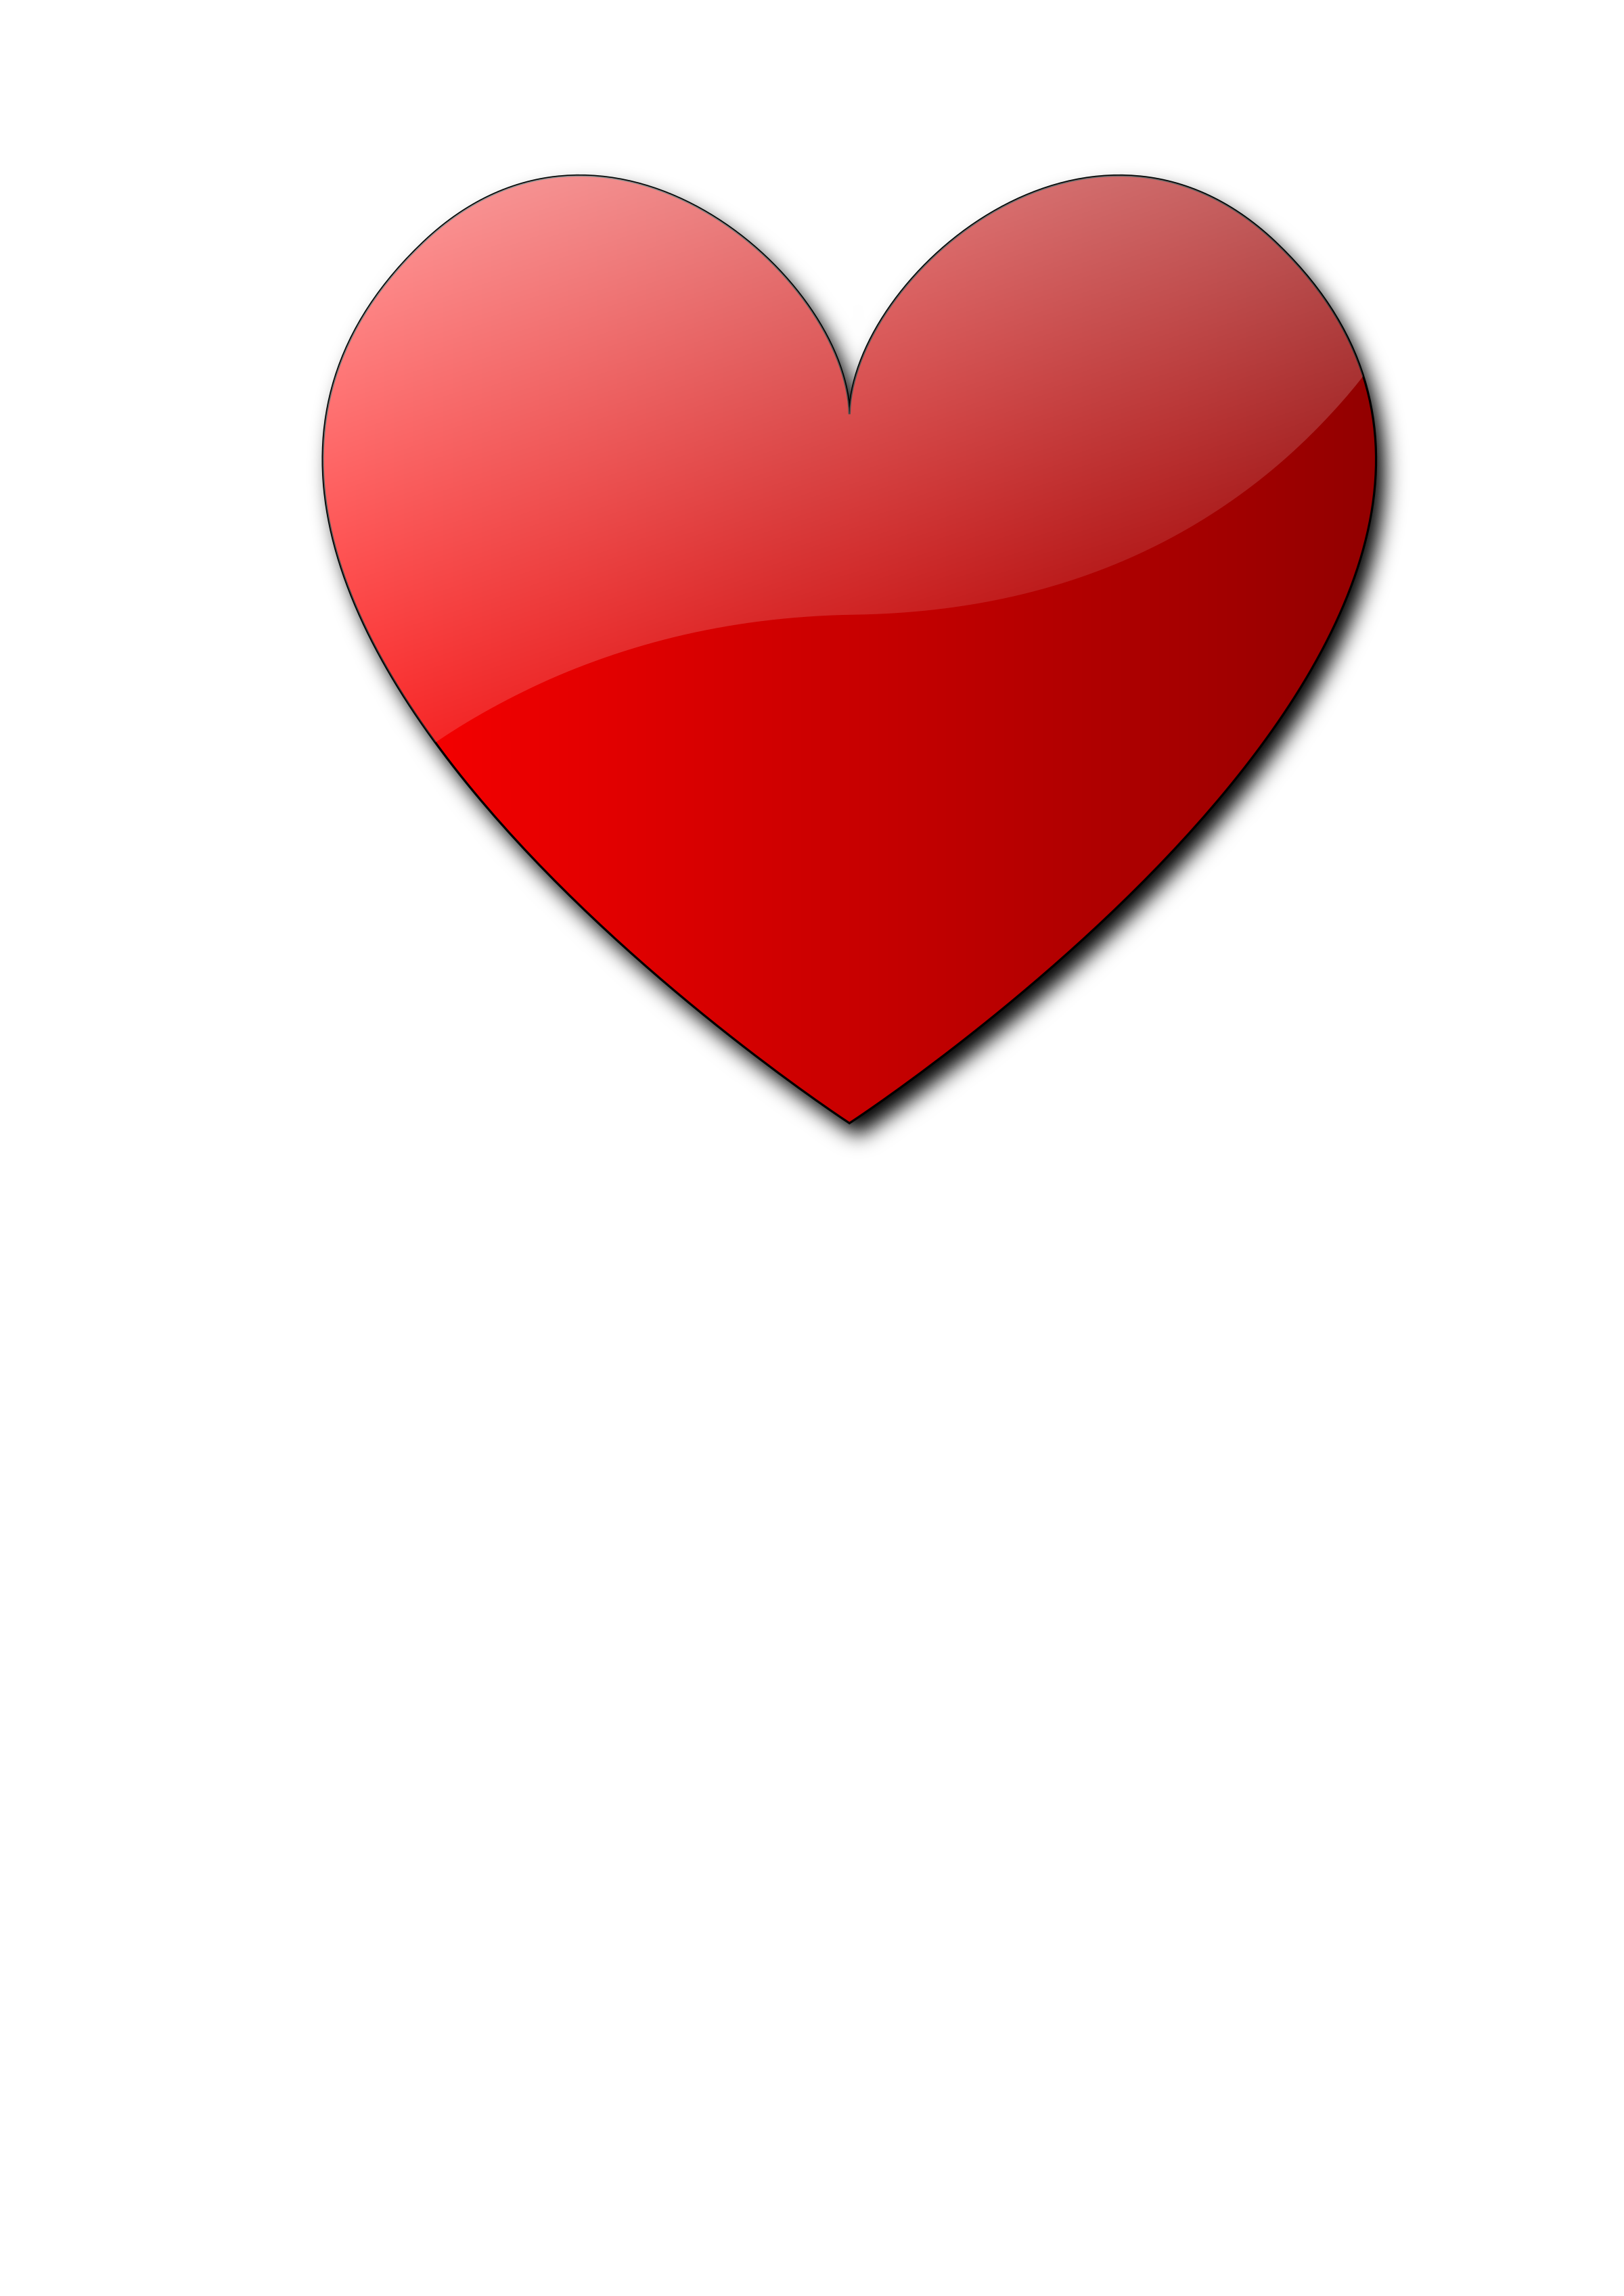 Heart by inkscapeforum.it